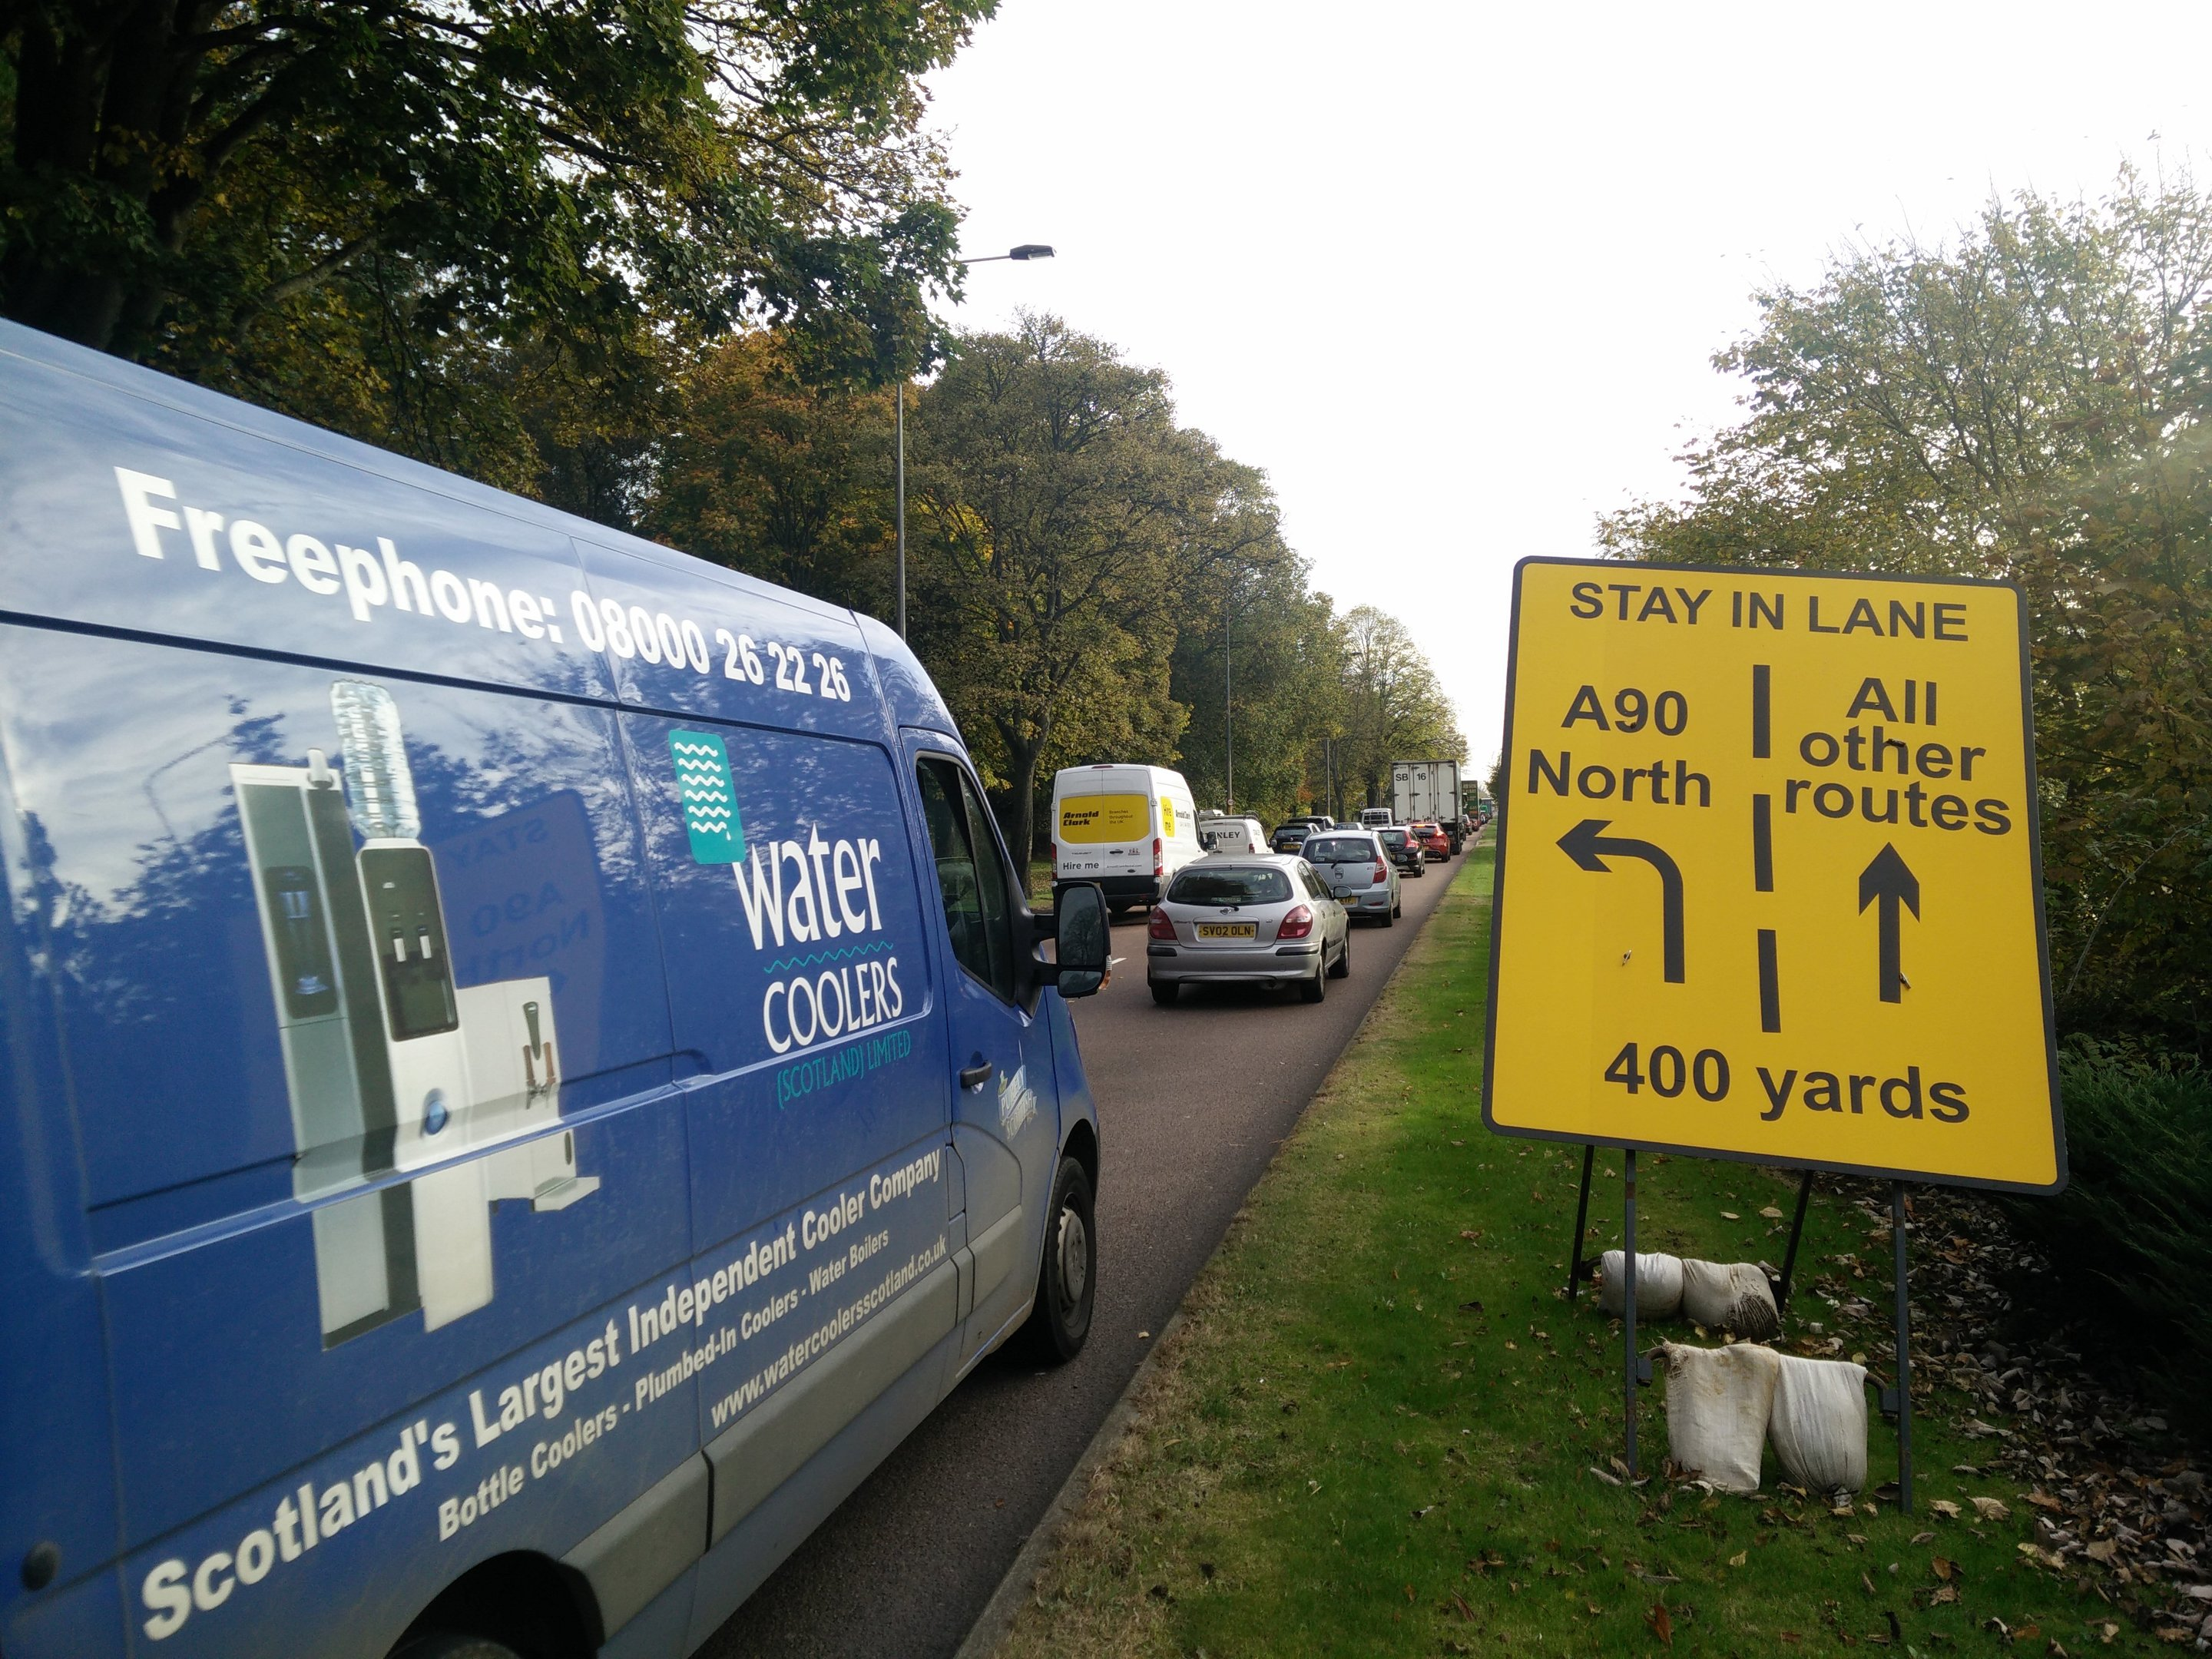 Drivers faced delays of up to 20 minutes during rush hour